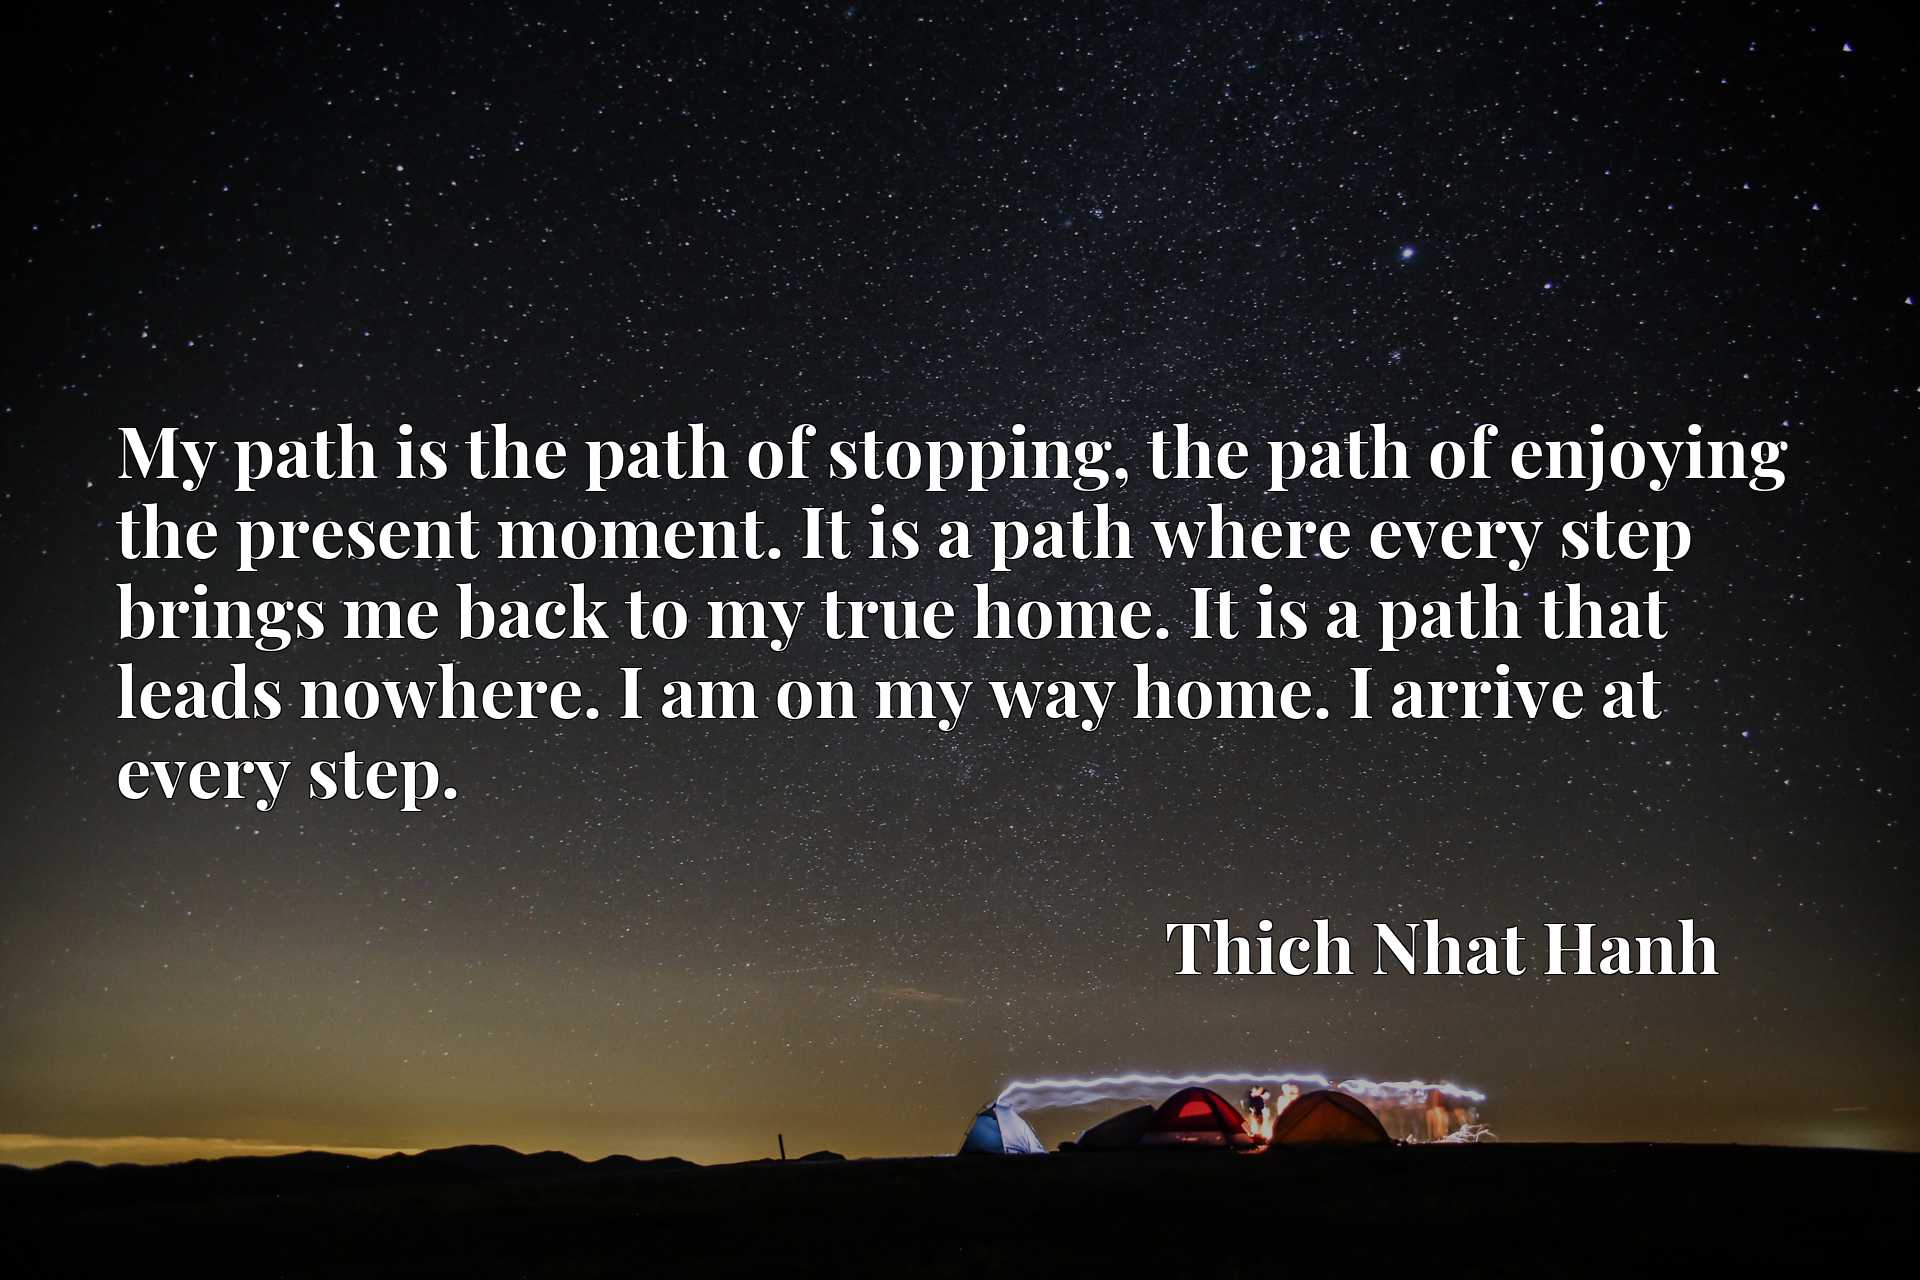 My path is the path of stopping, the path of enjoying the present moment. It is a path where every step brings me back to my true home. It is a path that leads nowhere. I am on my way home. I arrive at every step.